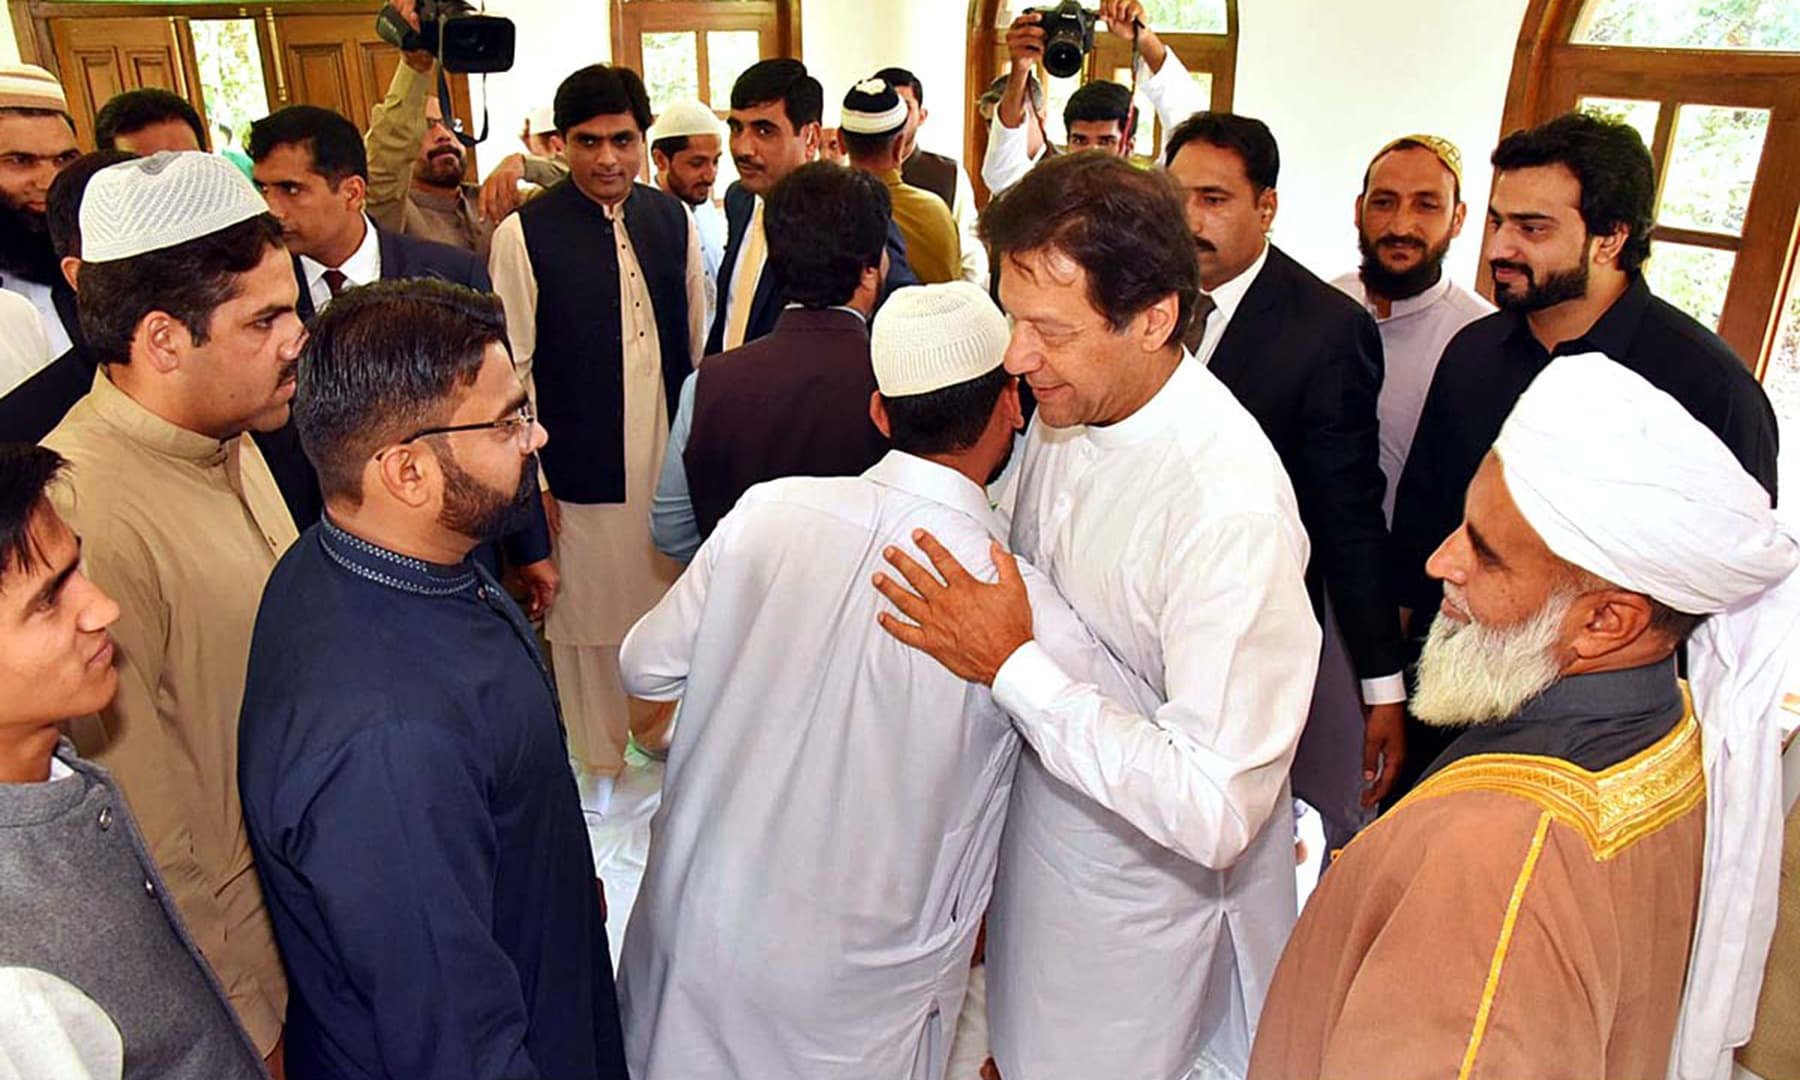 Prime Minister Imran Khan greets his staff after Eid prayers on June 5. — APP